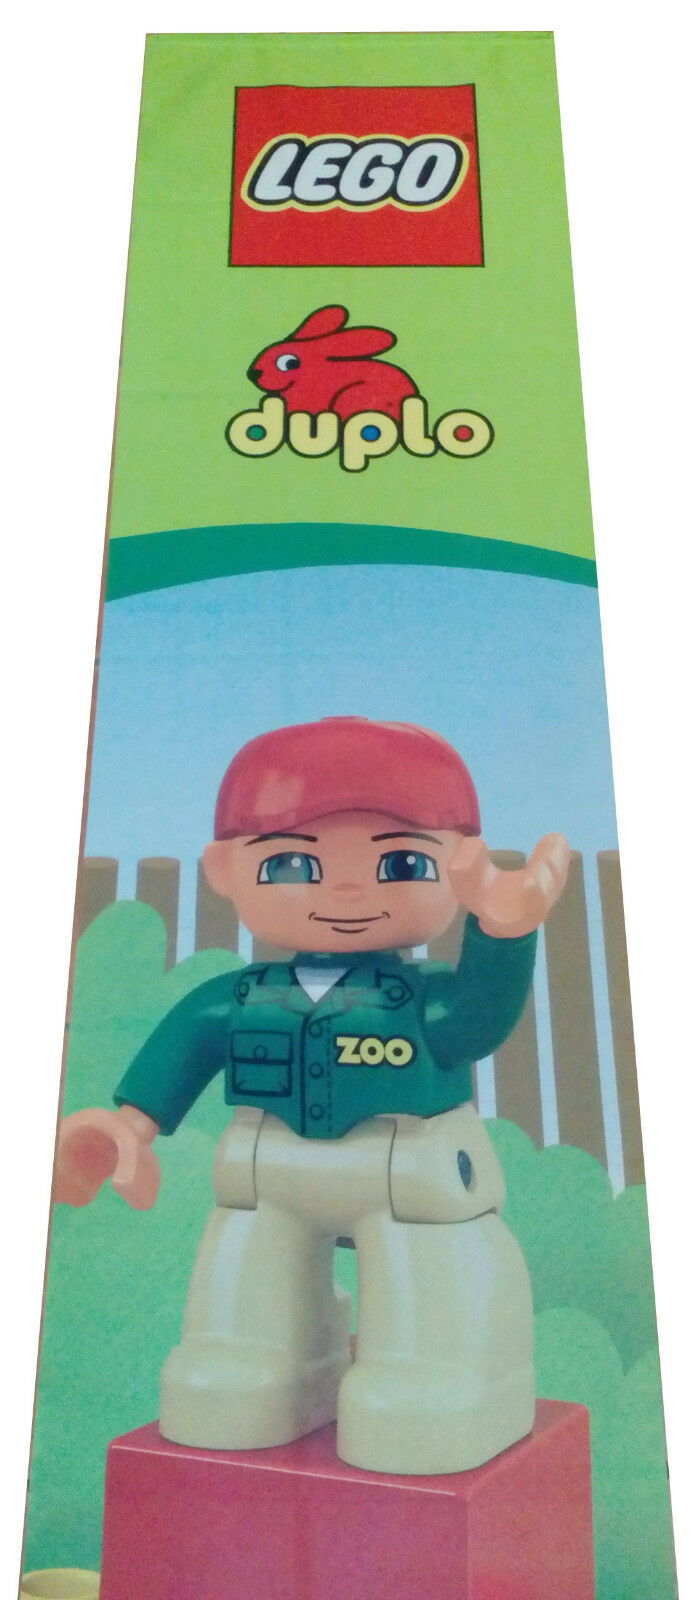 LEGO DUBLO BANNER 2m x 0.45m     0.8  x 0.2  USED FROM TOY STORE 435e2e